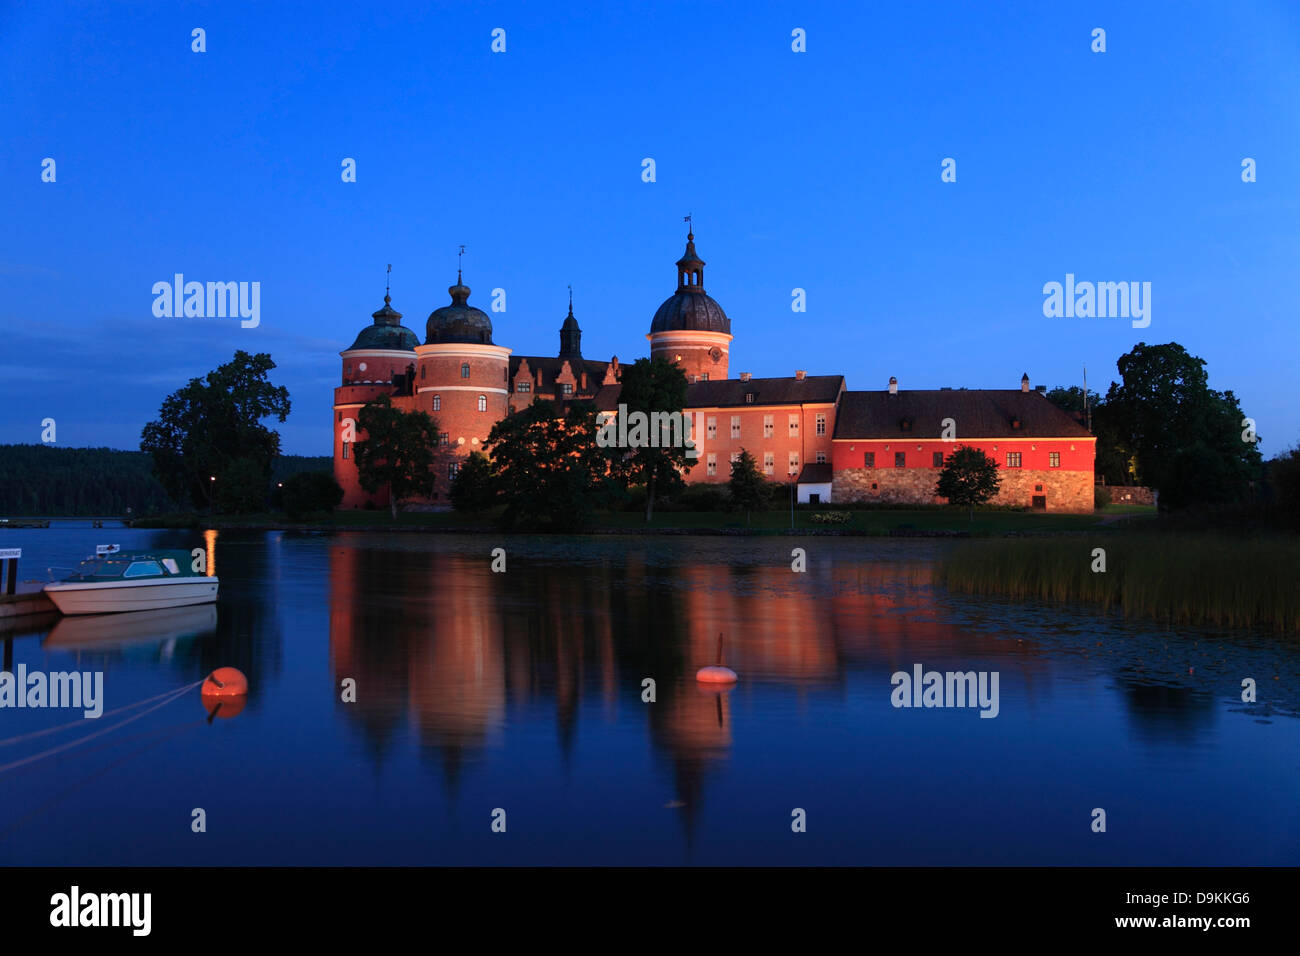 GRIPSHOLM Castle at lake Malaren in the evening, Mariefred, Sodermanland, Sweden, Scandinavia - Stock Image